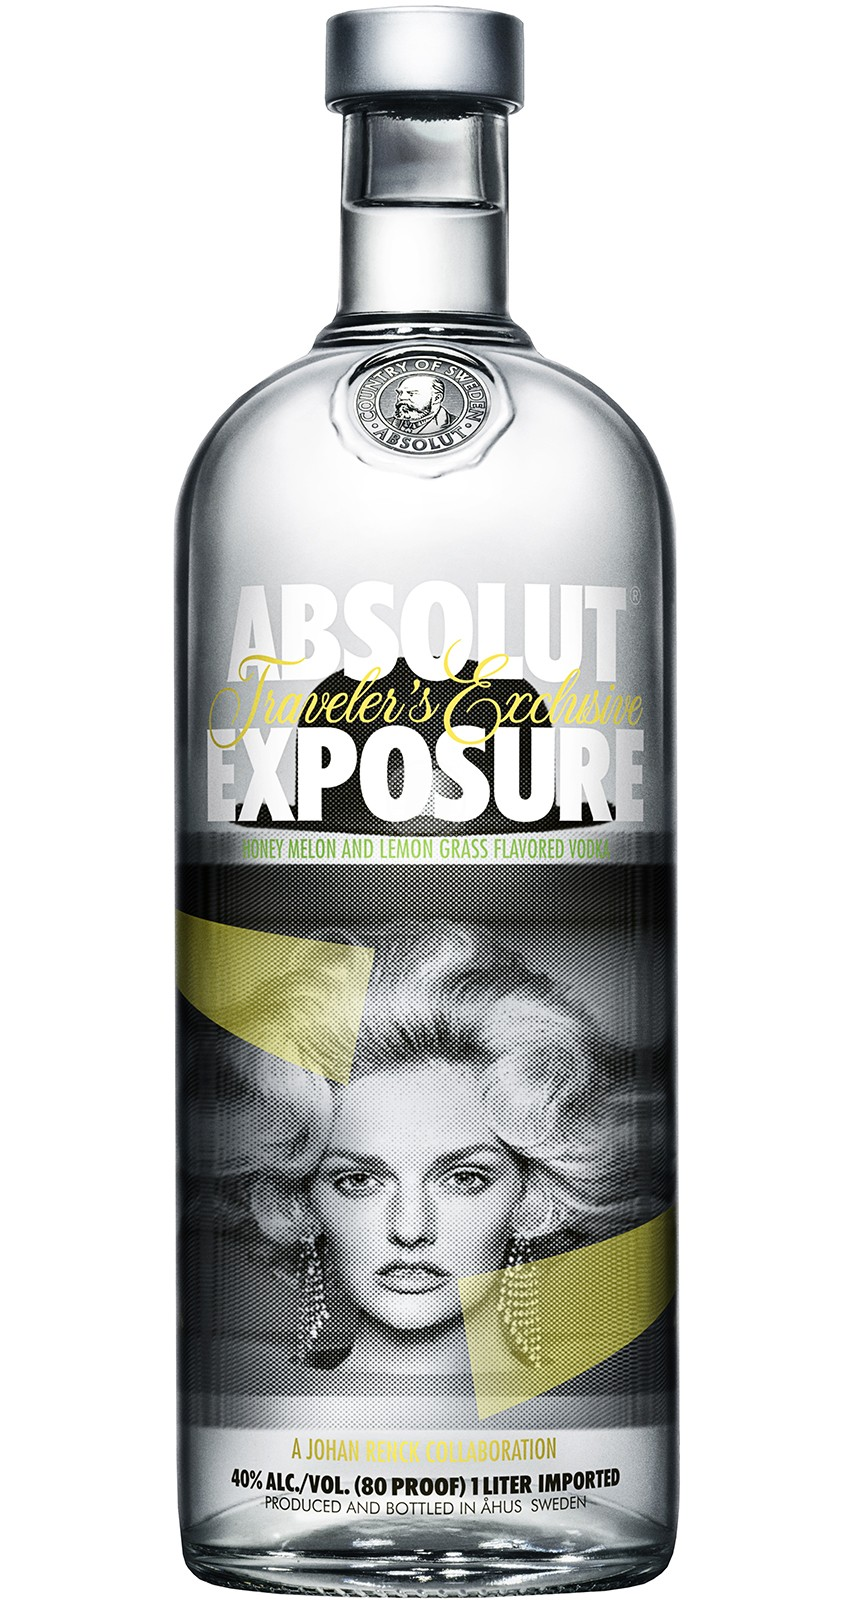 Absolut Glimmer